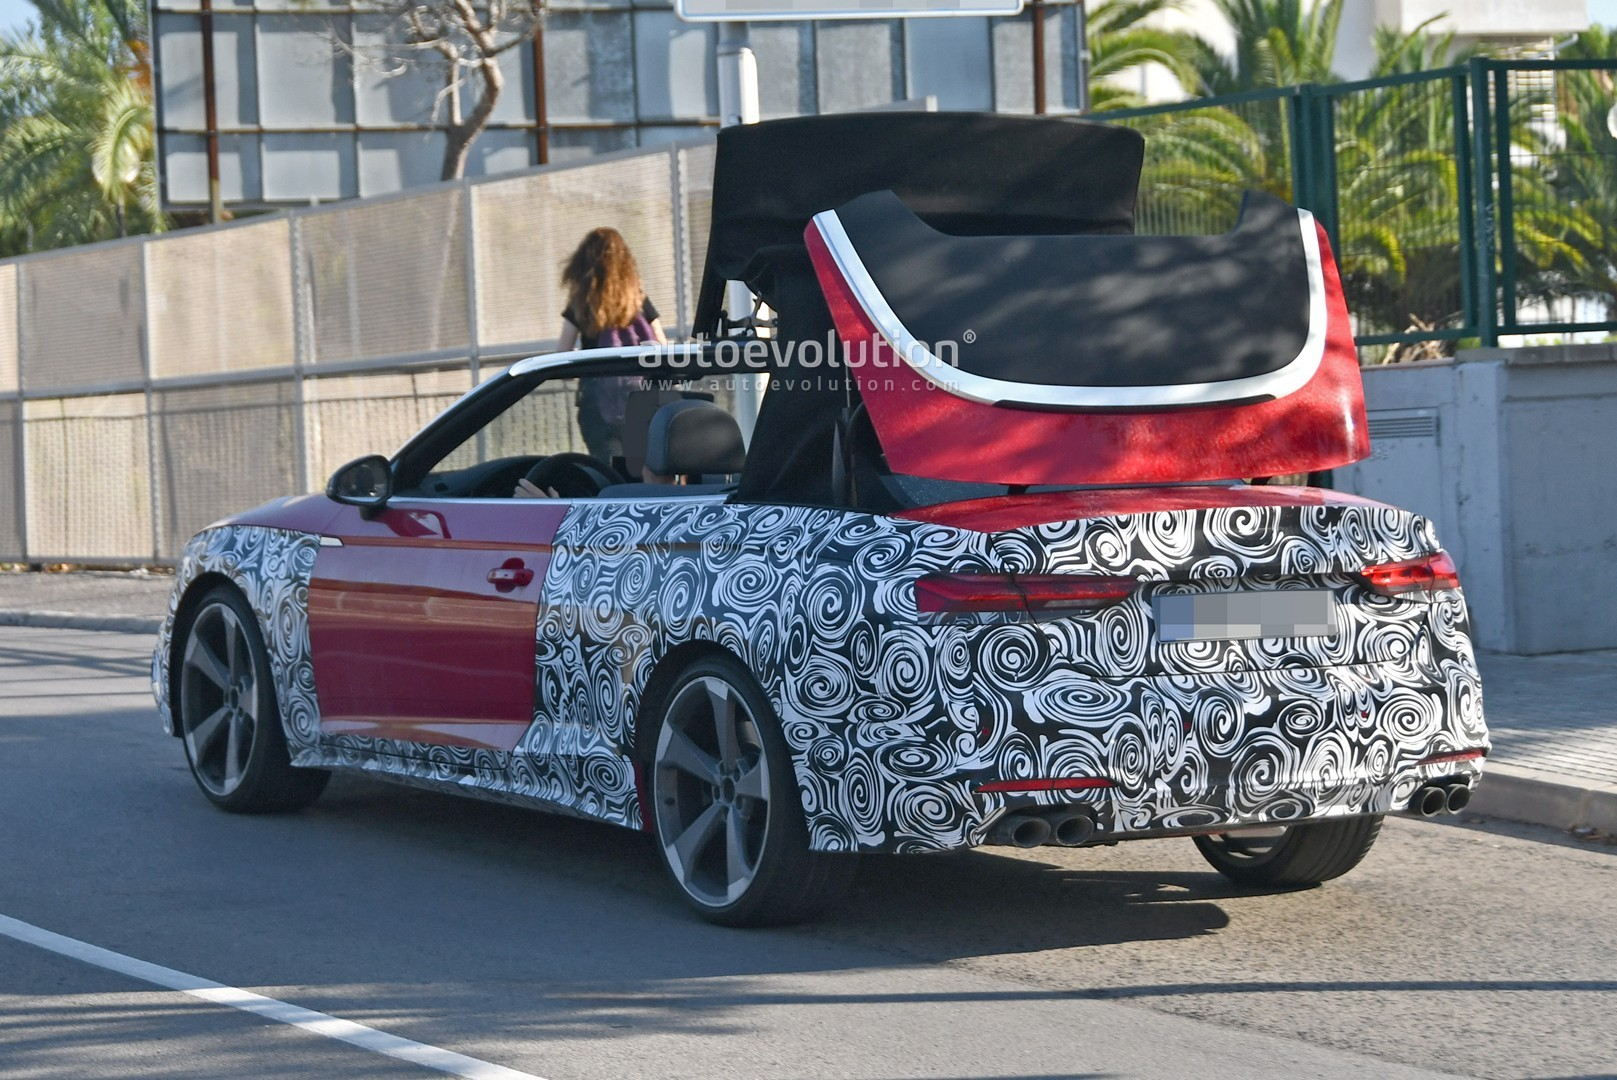 2021 audi s5 facelift spied with cabrio top in action